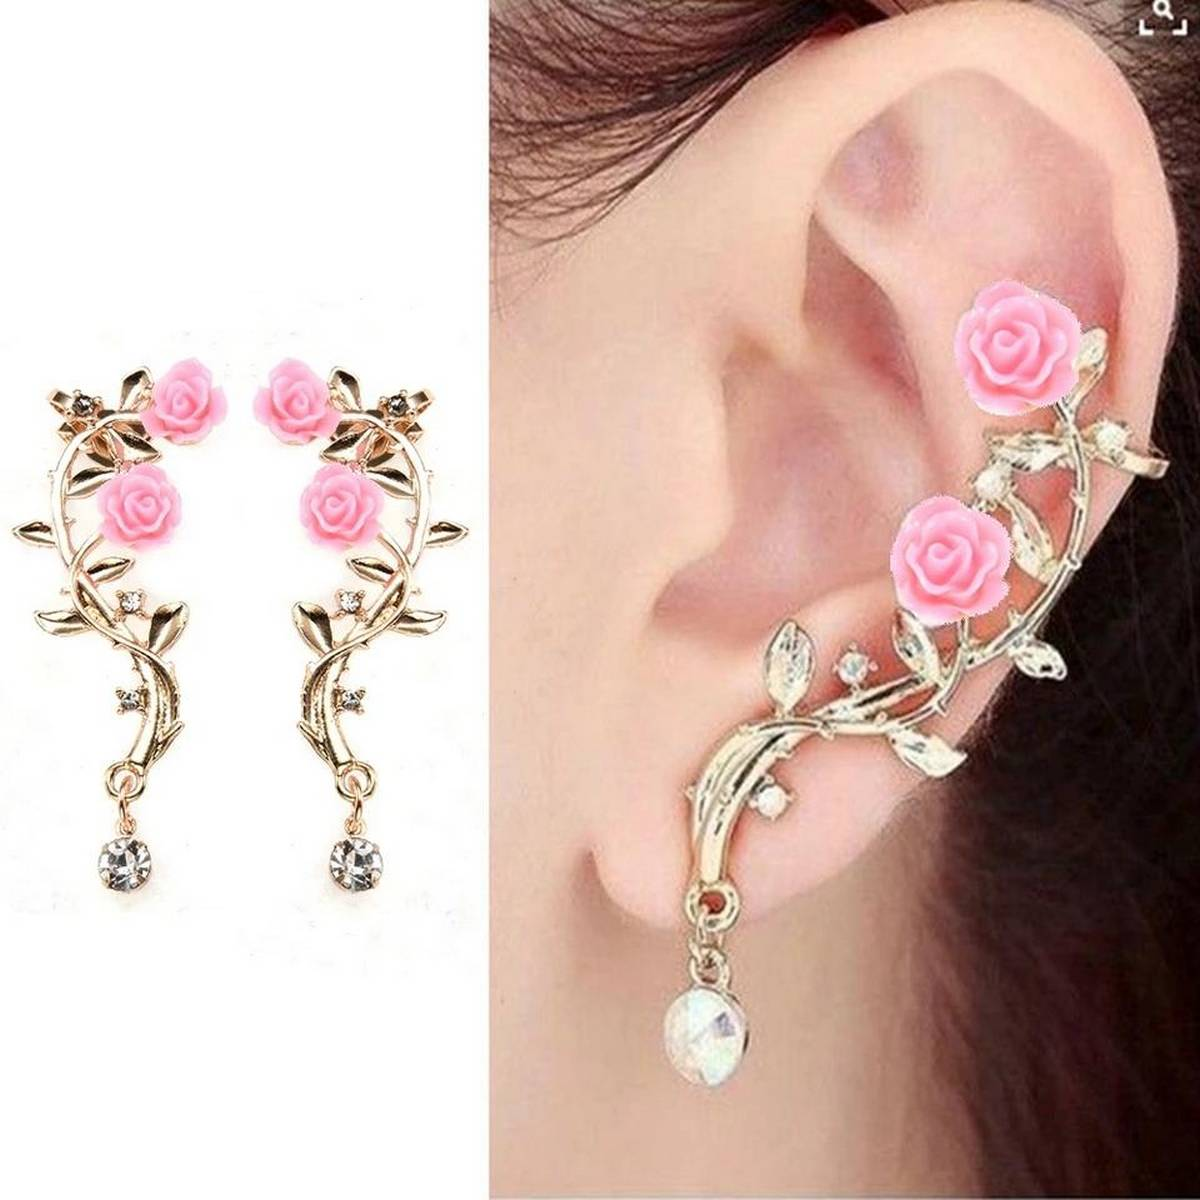 New FaShion Gold Plated Pink Rose Ear cuff One Earrings for Weddings, party's and Events